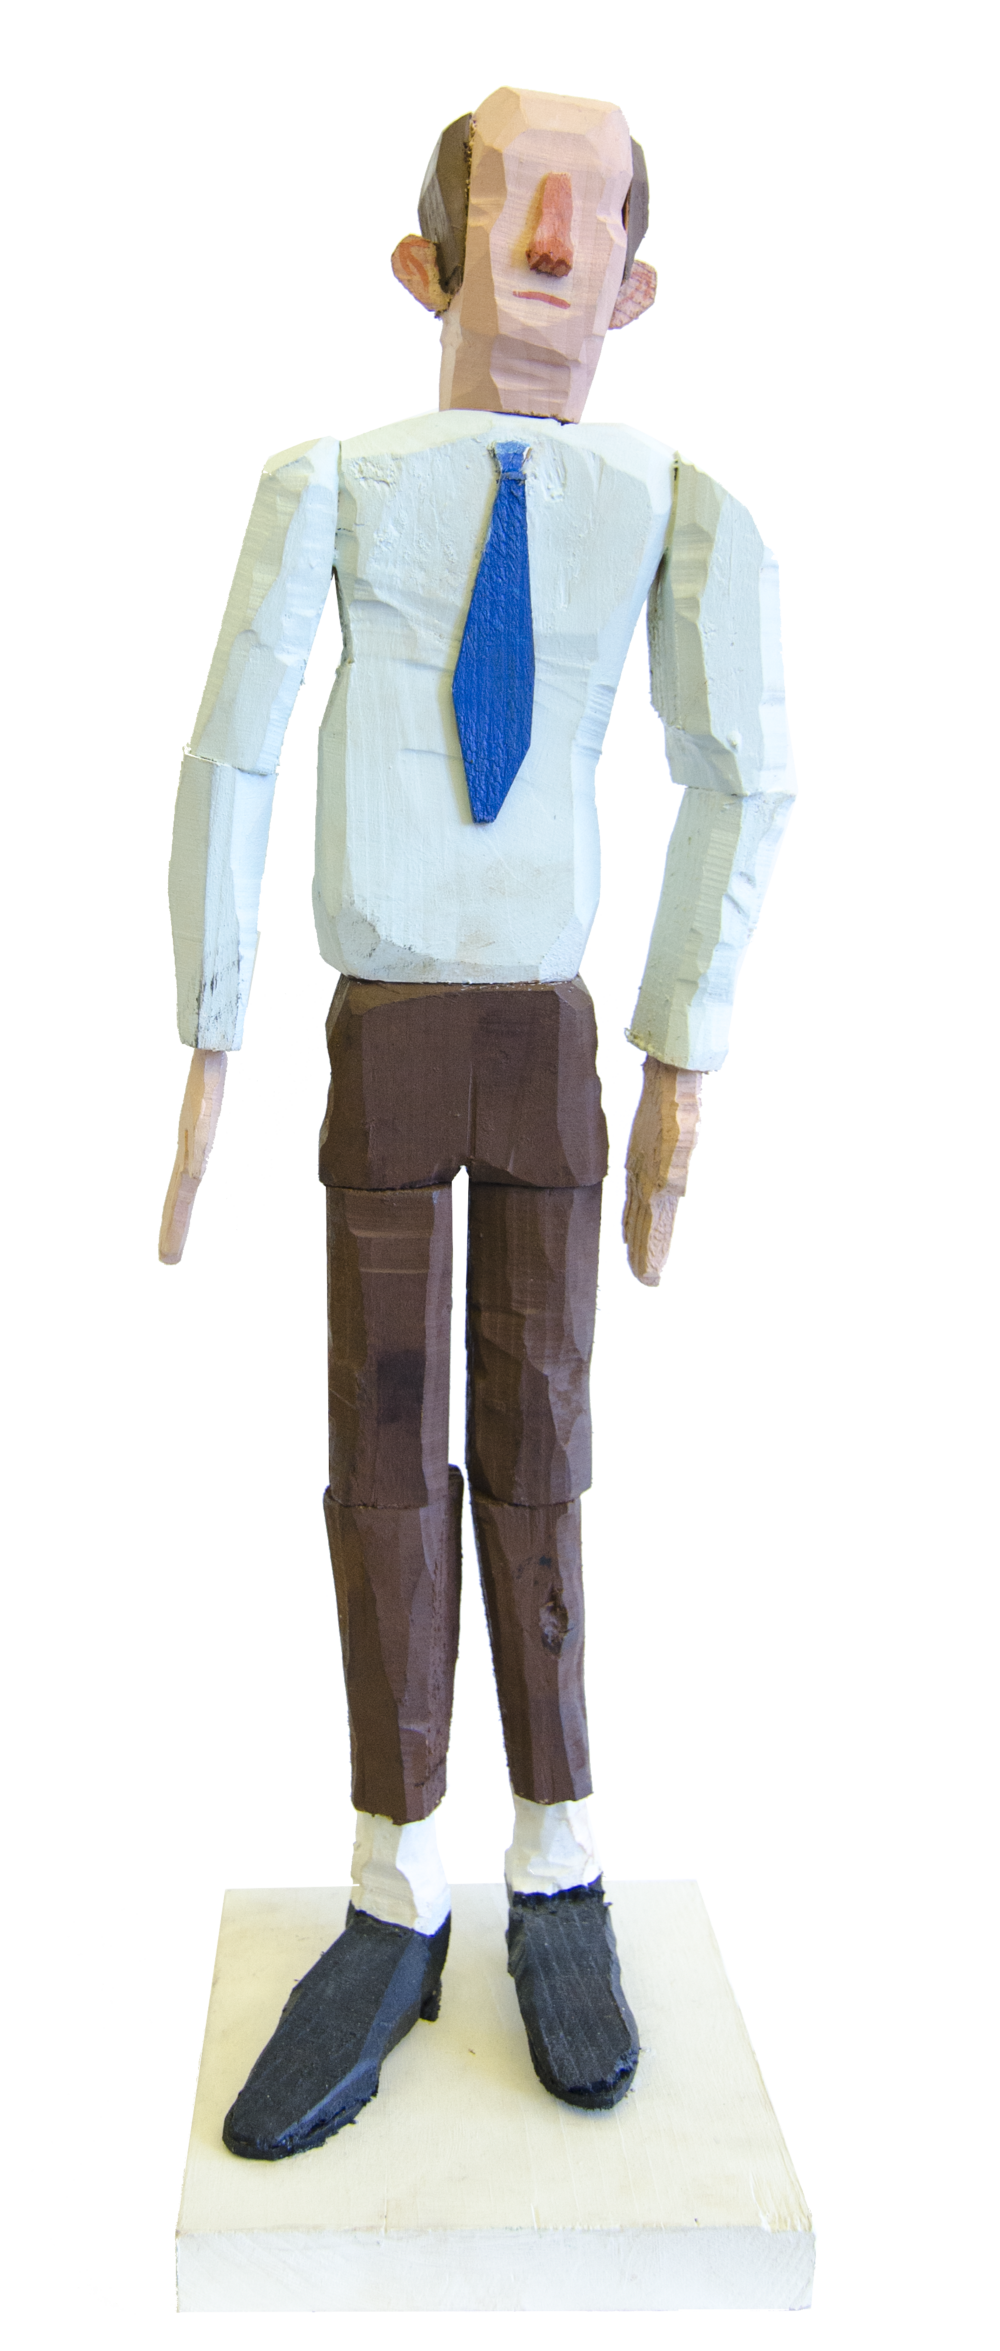 Business man , 2015, Acrylic on wood, 19.5 x 5.5 x 6 inches